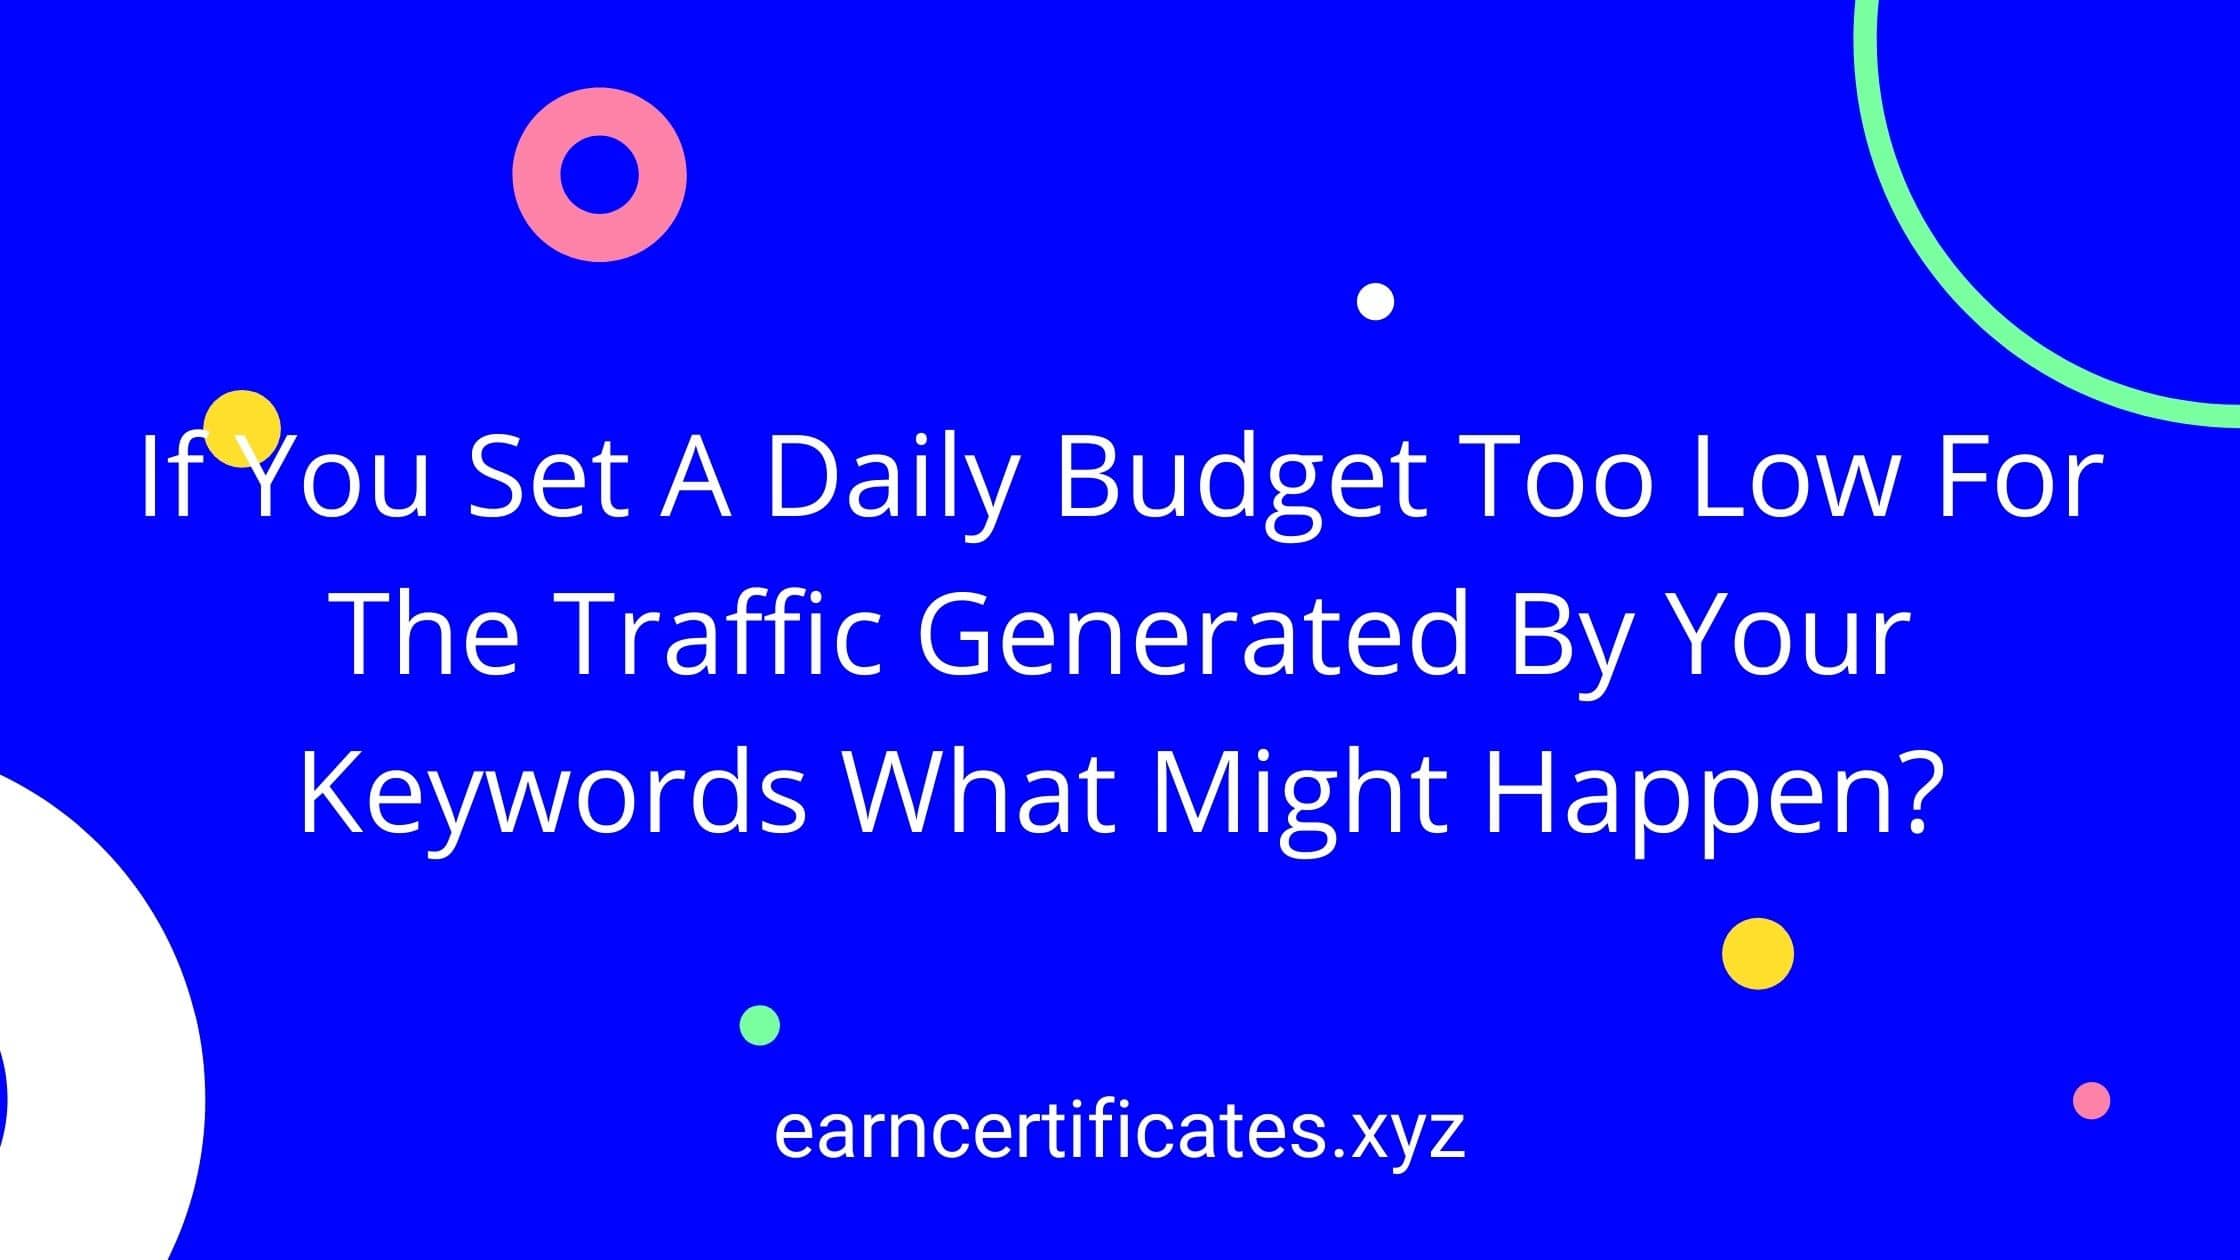 If You Set A Daily Budget Too Low For The Traffic Generated By Your Keywords What Might Happen?